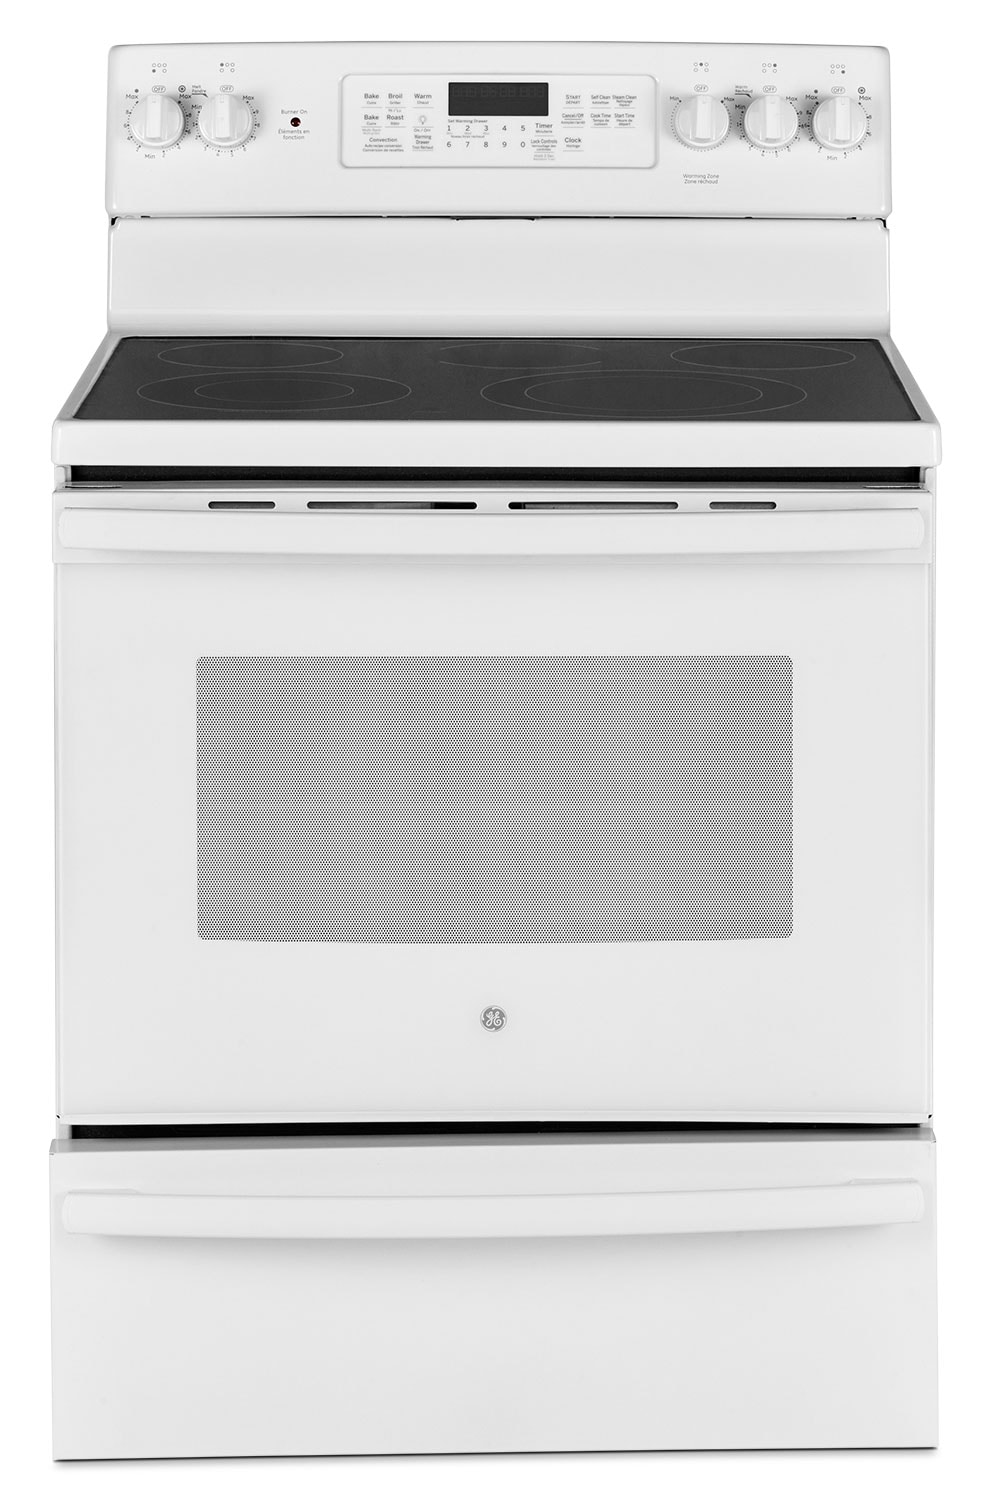 Cooking Products - GE 5.0 Cu. Ft. Freestanding Electric Range with Warming Drawer – JCB860DKWW